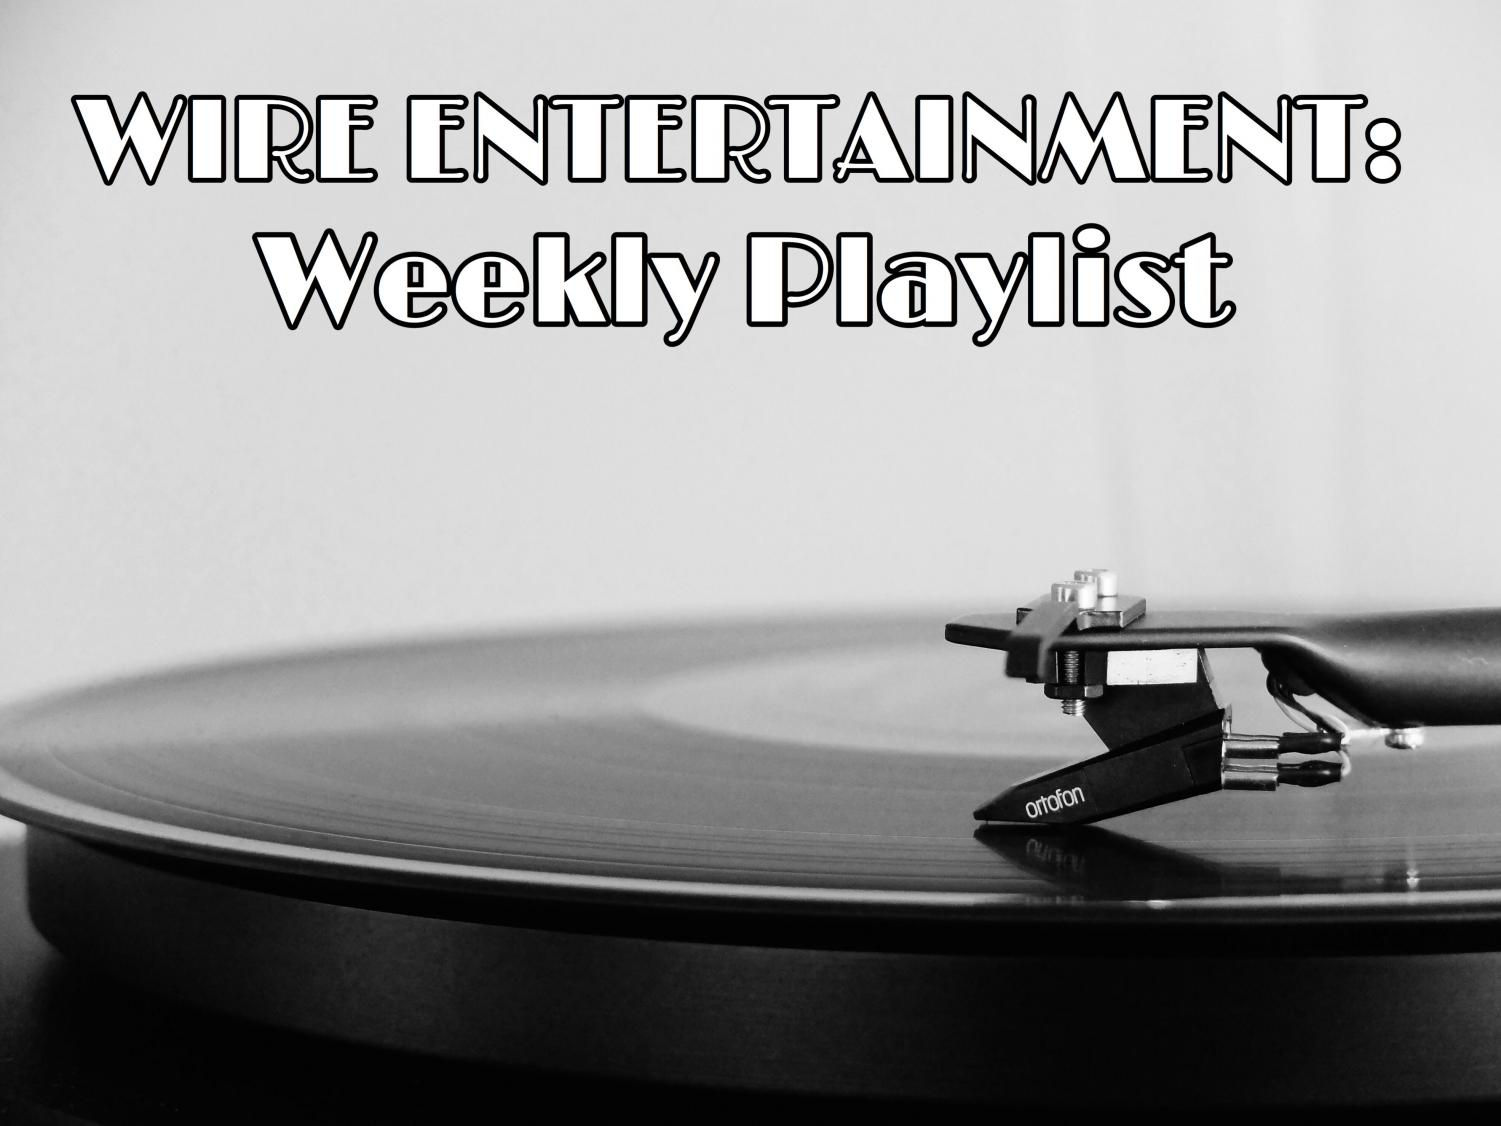 Entertainment's weekly spin with Frank Ocean, Russ and more